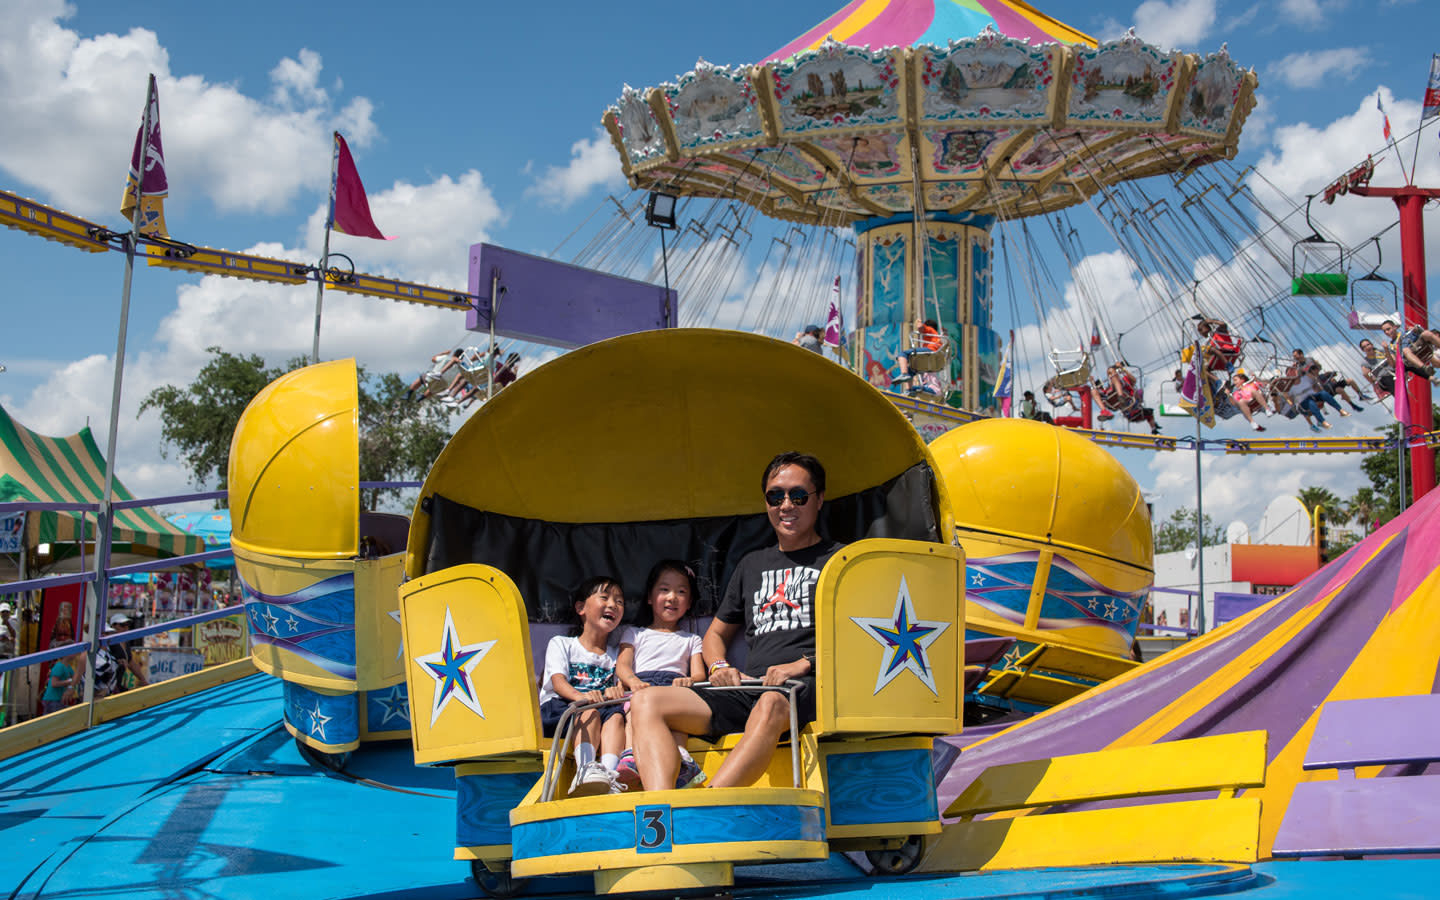 The Youth Fair – Date Coming Soon Pertaining To South Florida Fairgrounds Events 2021